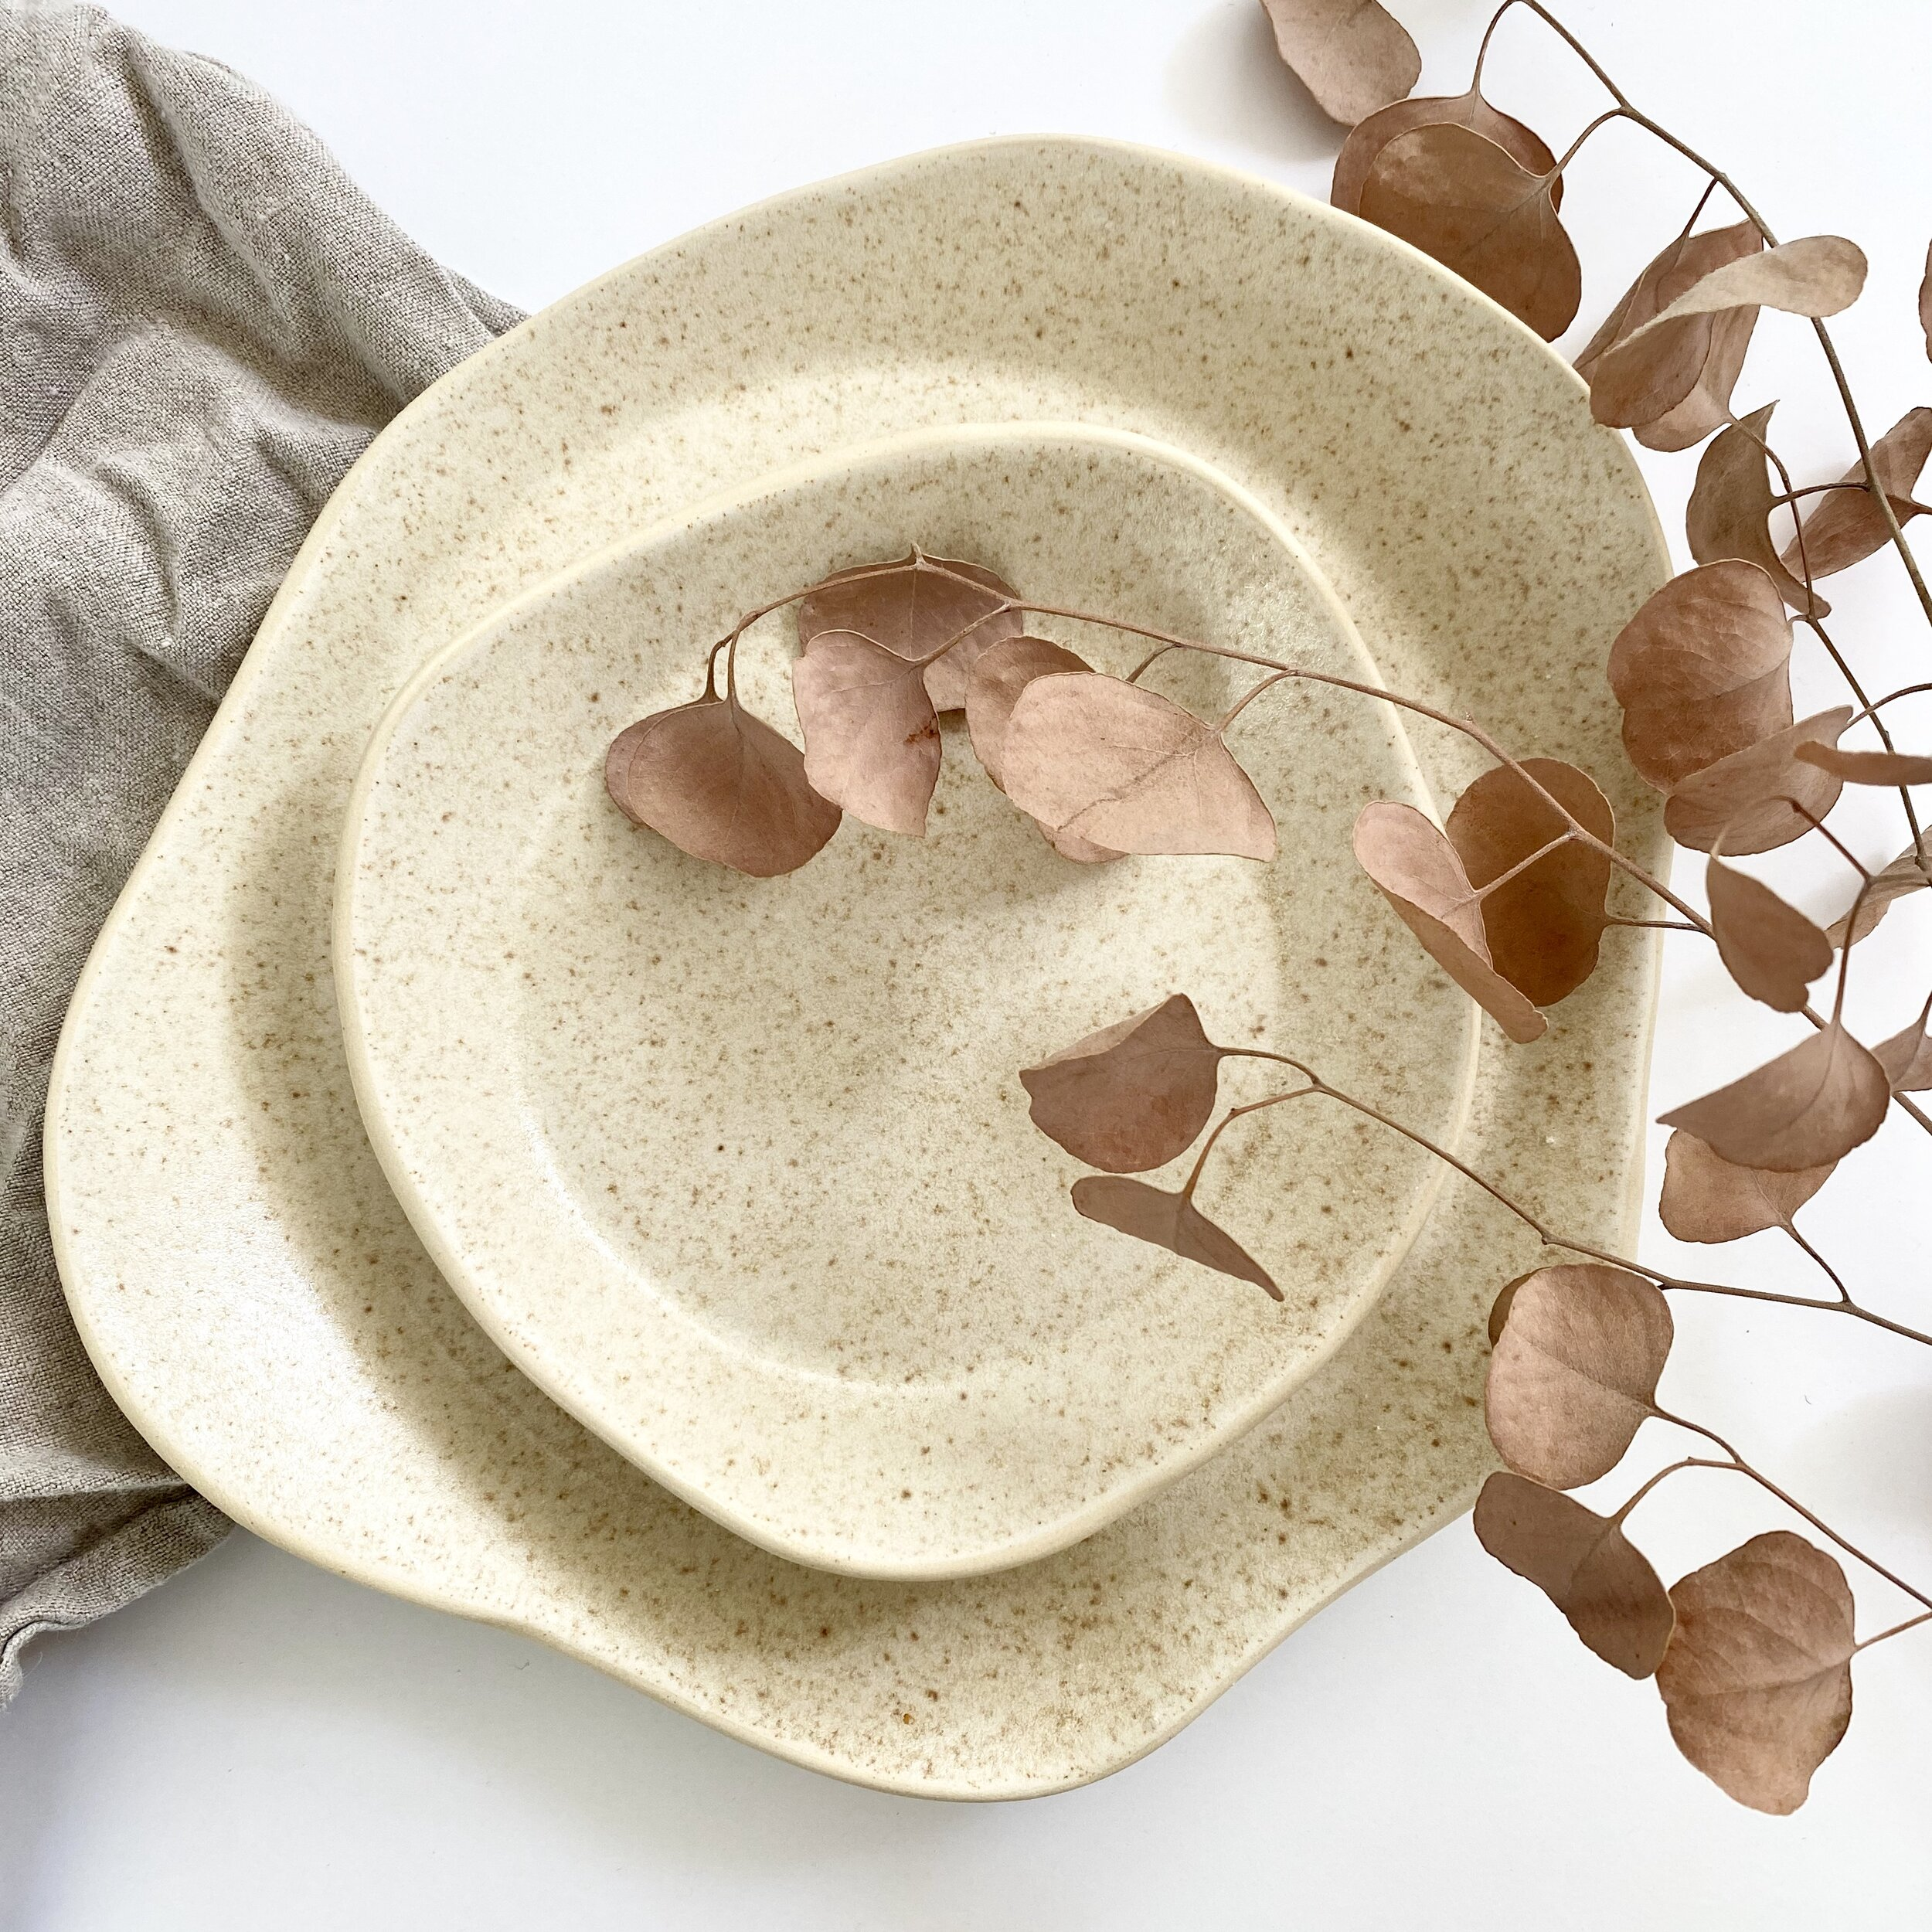 Minimalist Plateware & Shop Pottery - Plateware Dinnerware Drinkware + Home Goods ...